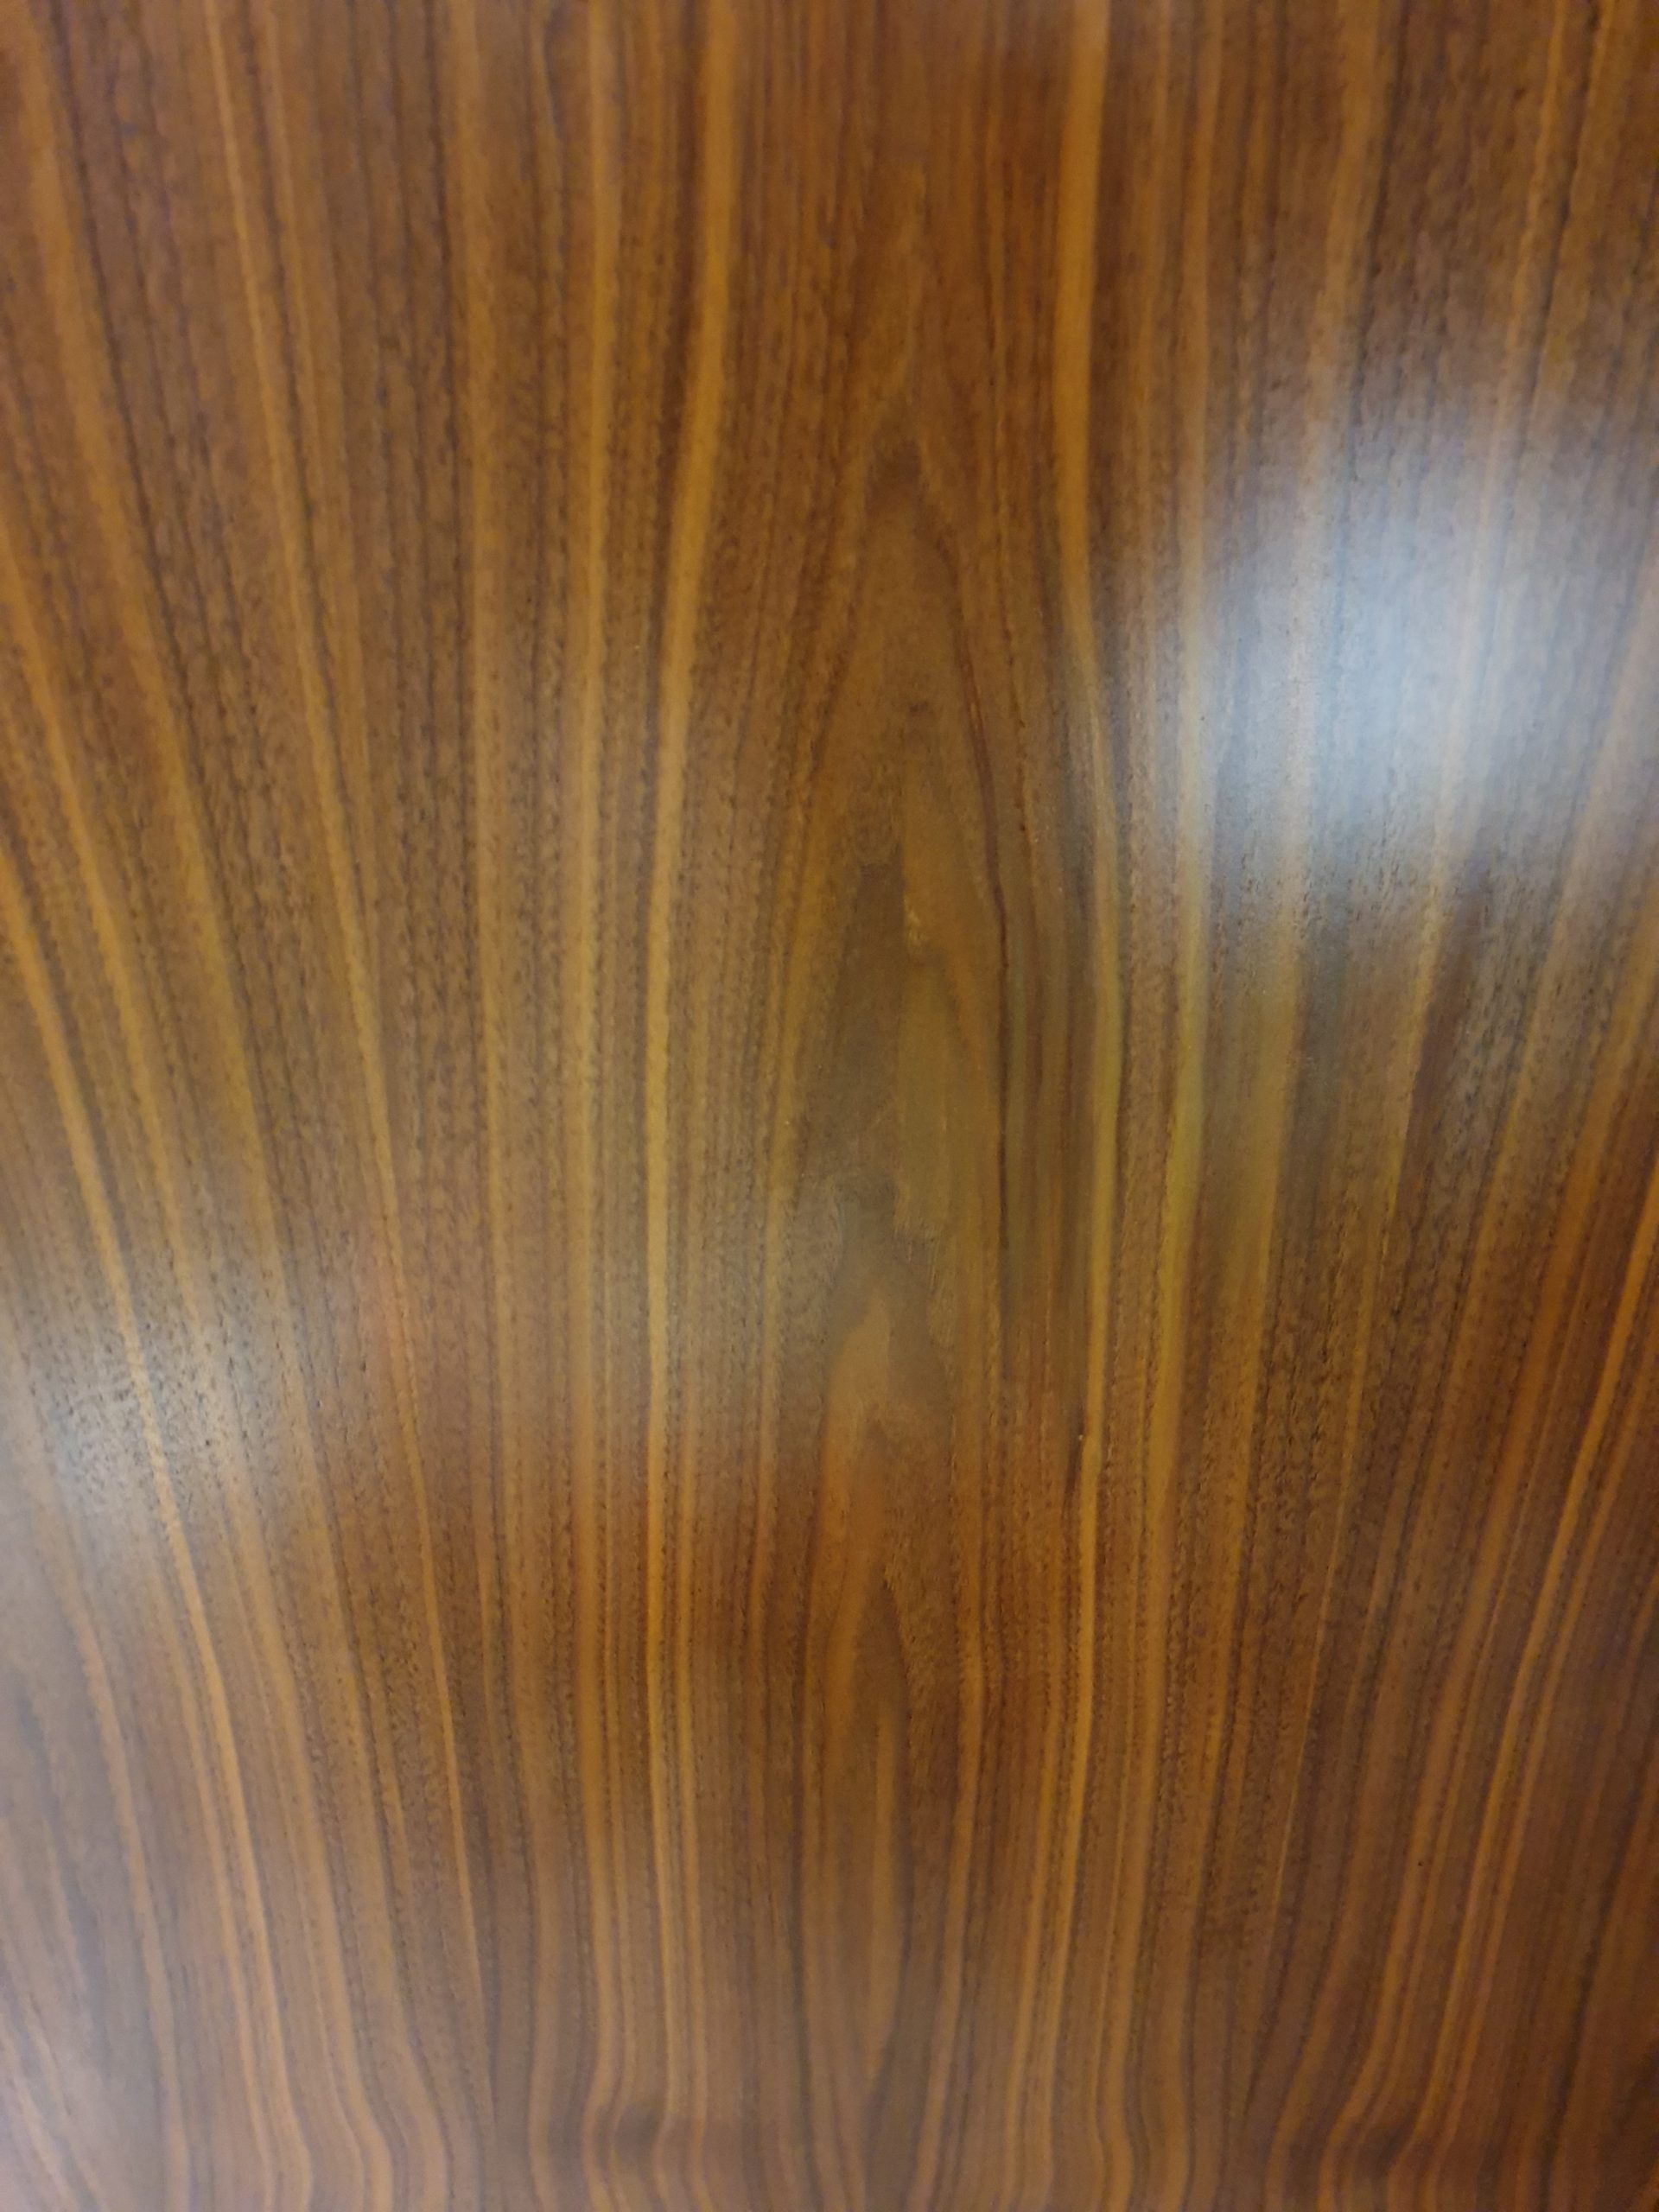 BADLY SCRATCHED VENEER DOOR FRENCH POLISHING REPAIR AFTER